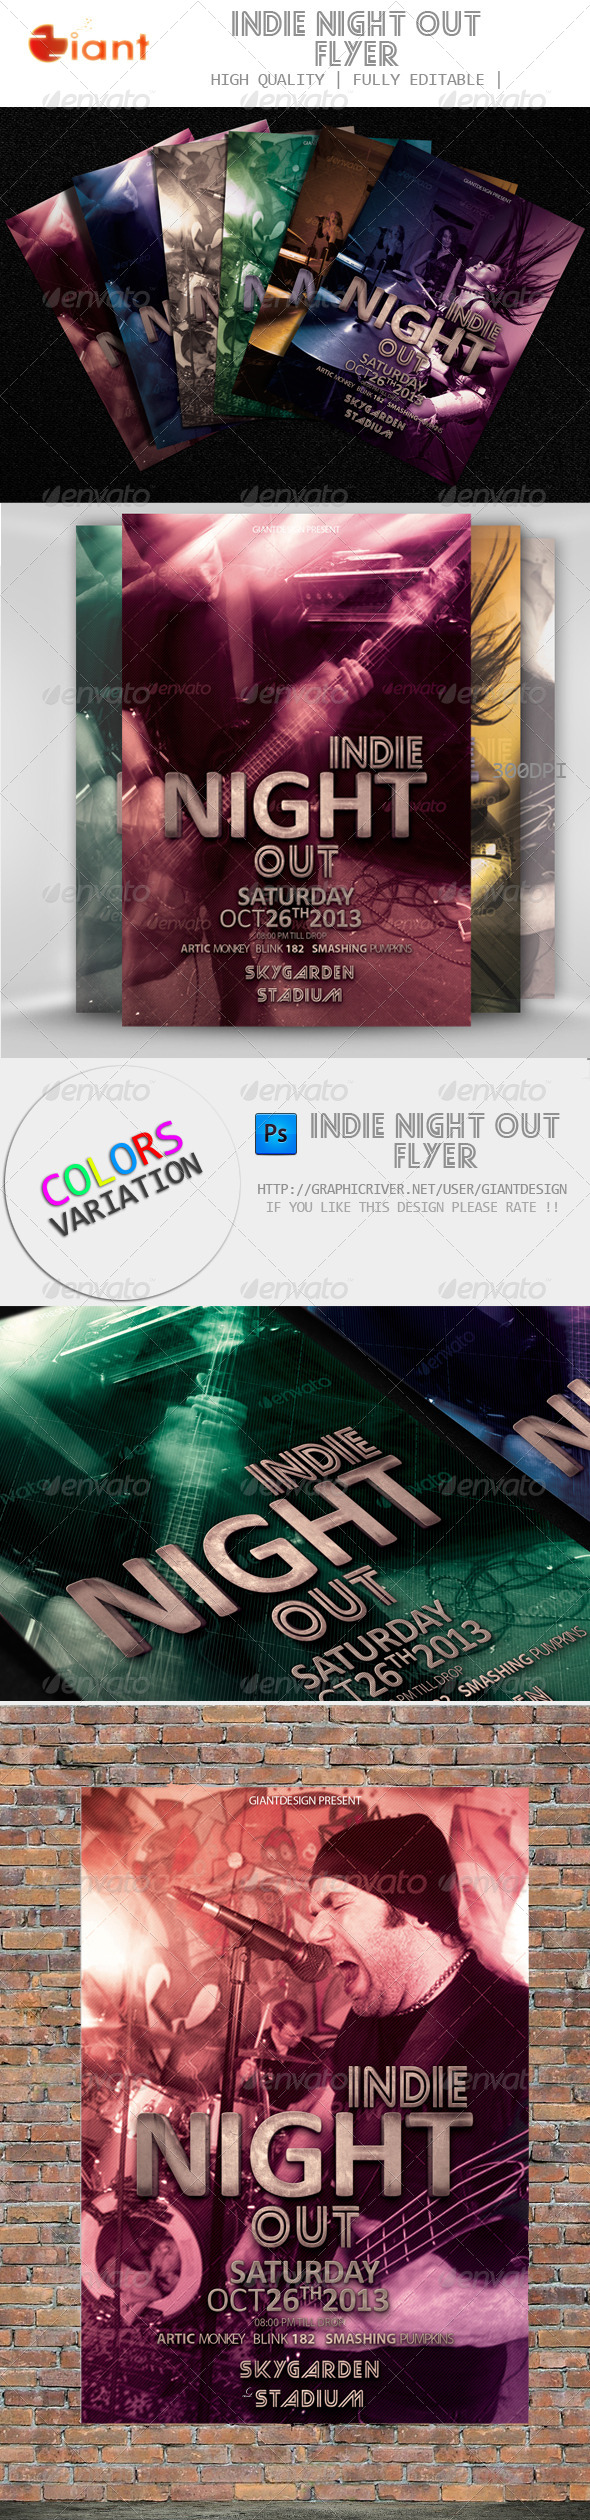 GraphicRiver Indie Night Out Flyer 5678352